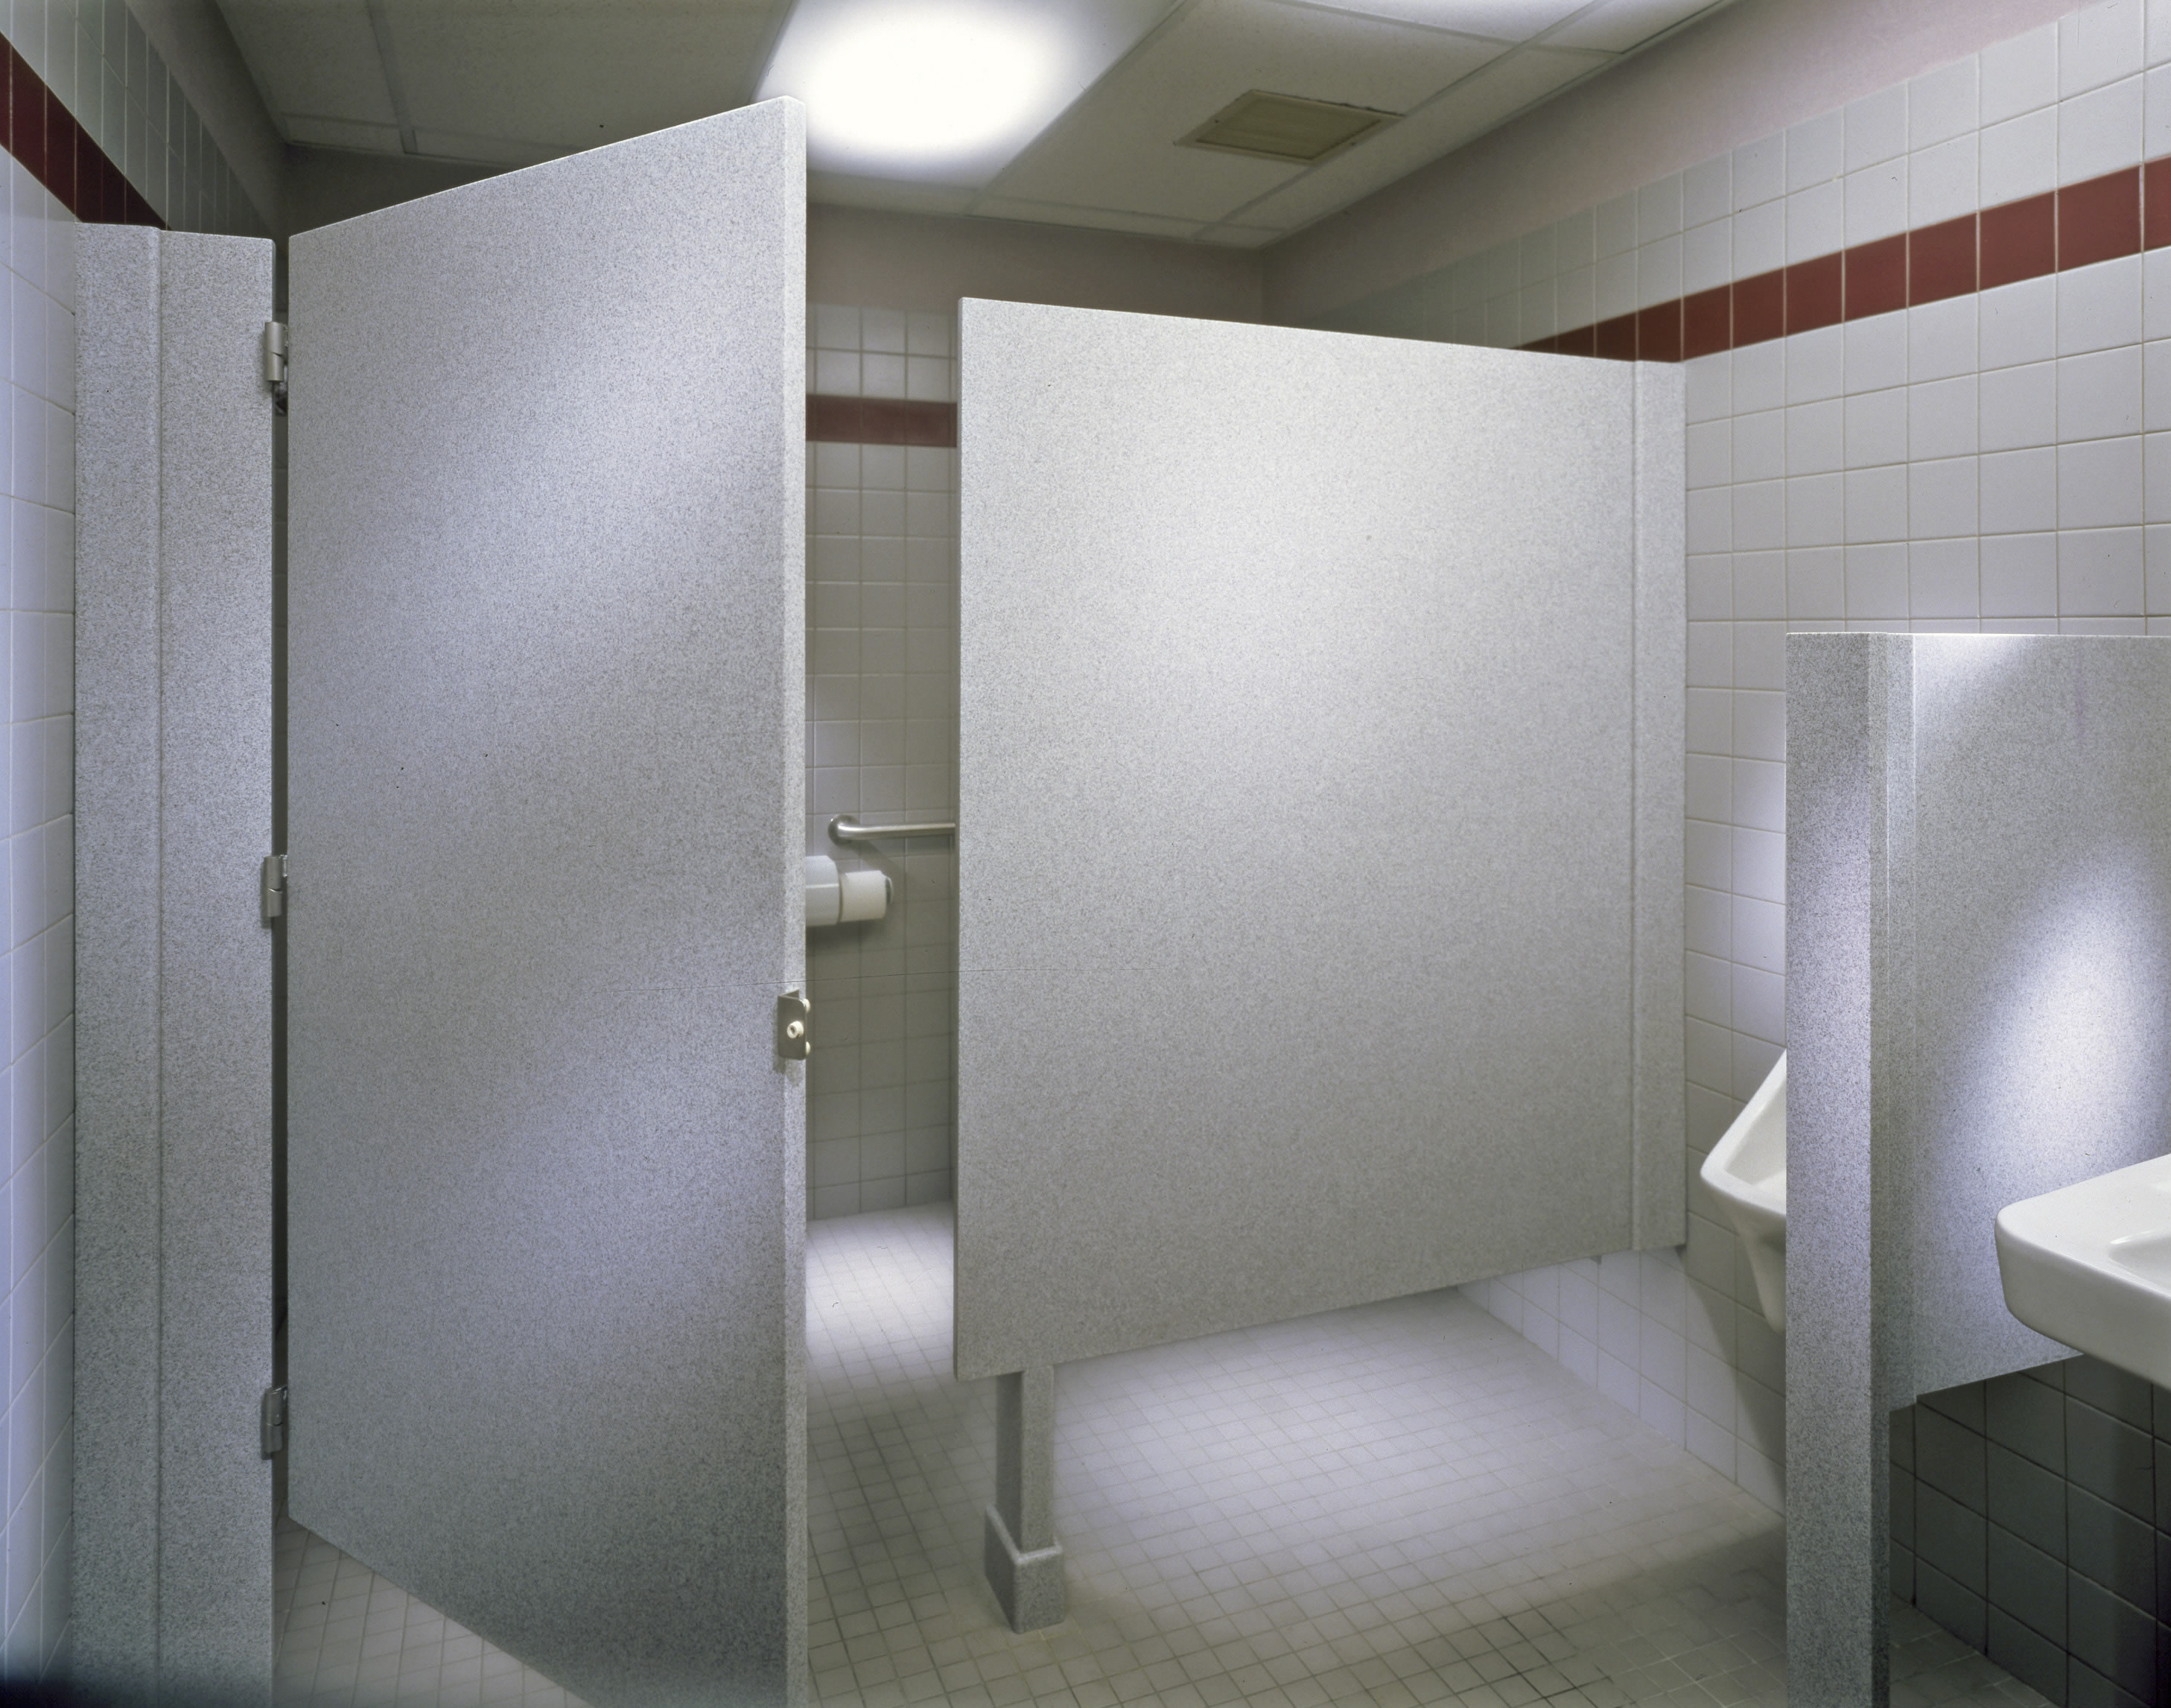 Bathroom Stall Dividers showershapes® bathrooms dividers/stalls | gw surfaces